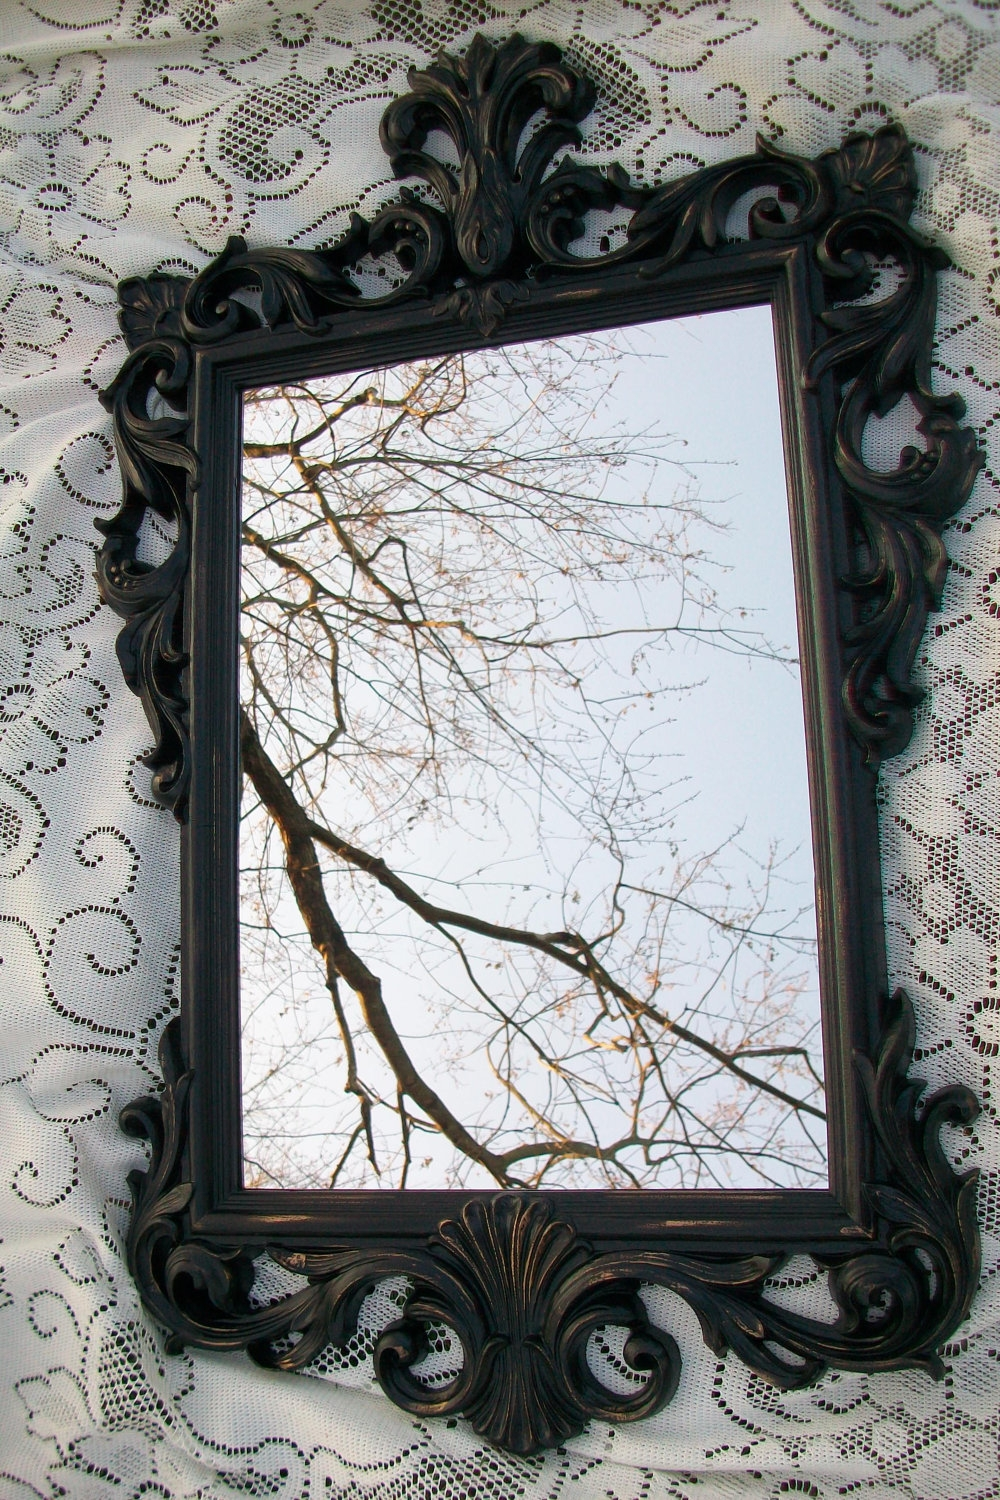 Large Vintage Mirror Black Mirror Ornate Mirror Gothic Within Gothic Wall Mirror (Image 14 of 15)